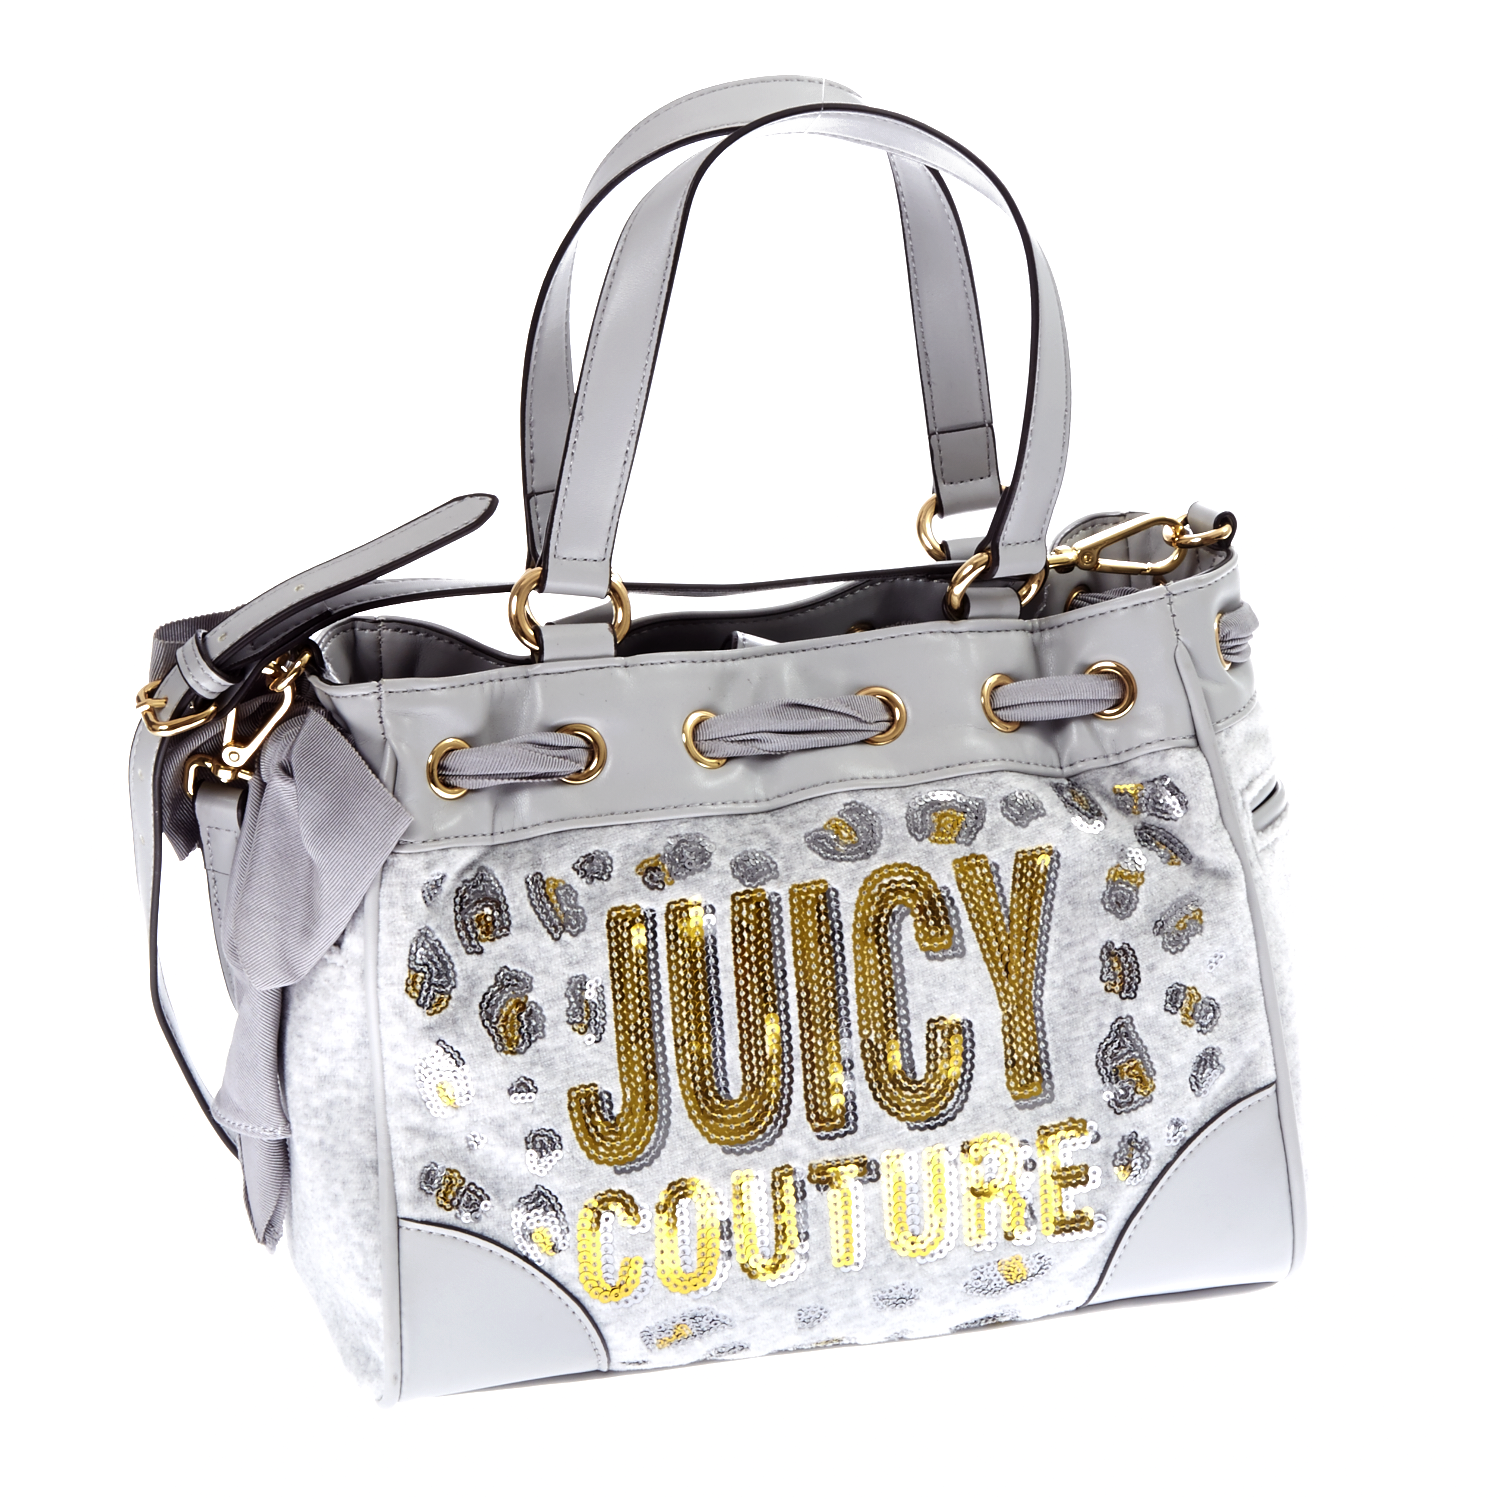 JUICY COUTURE – Γυναικεία τσάντα Juicy Couture γκρι 1409511.0-0088